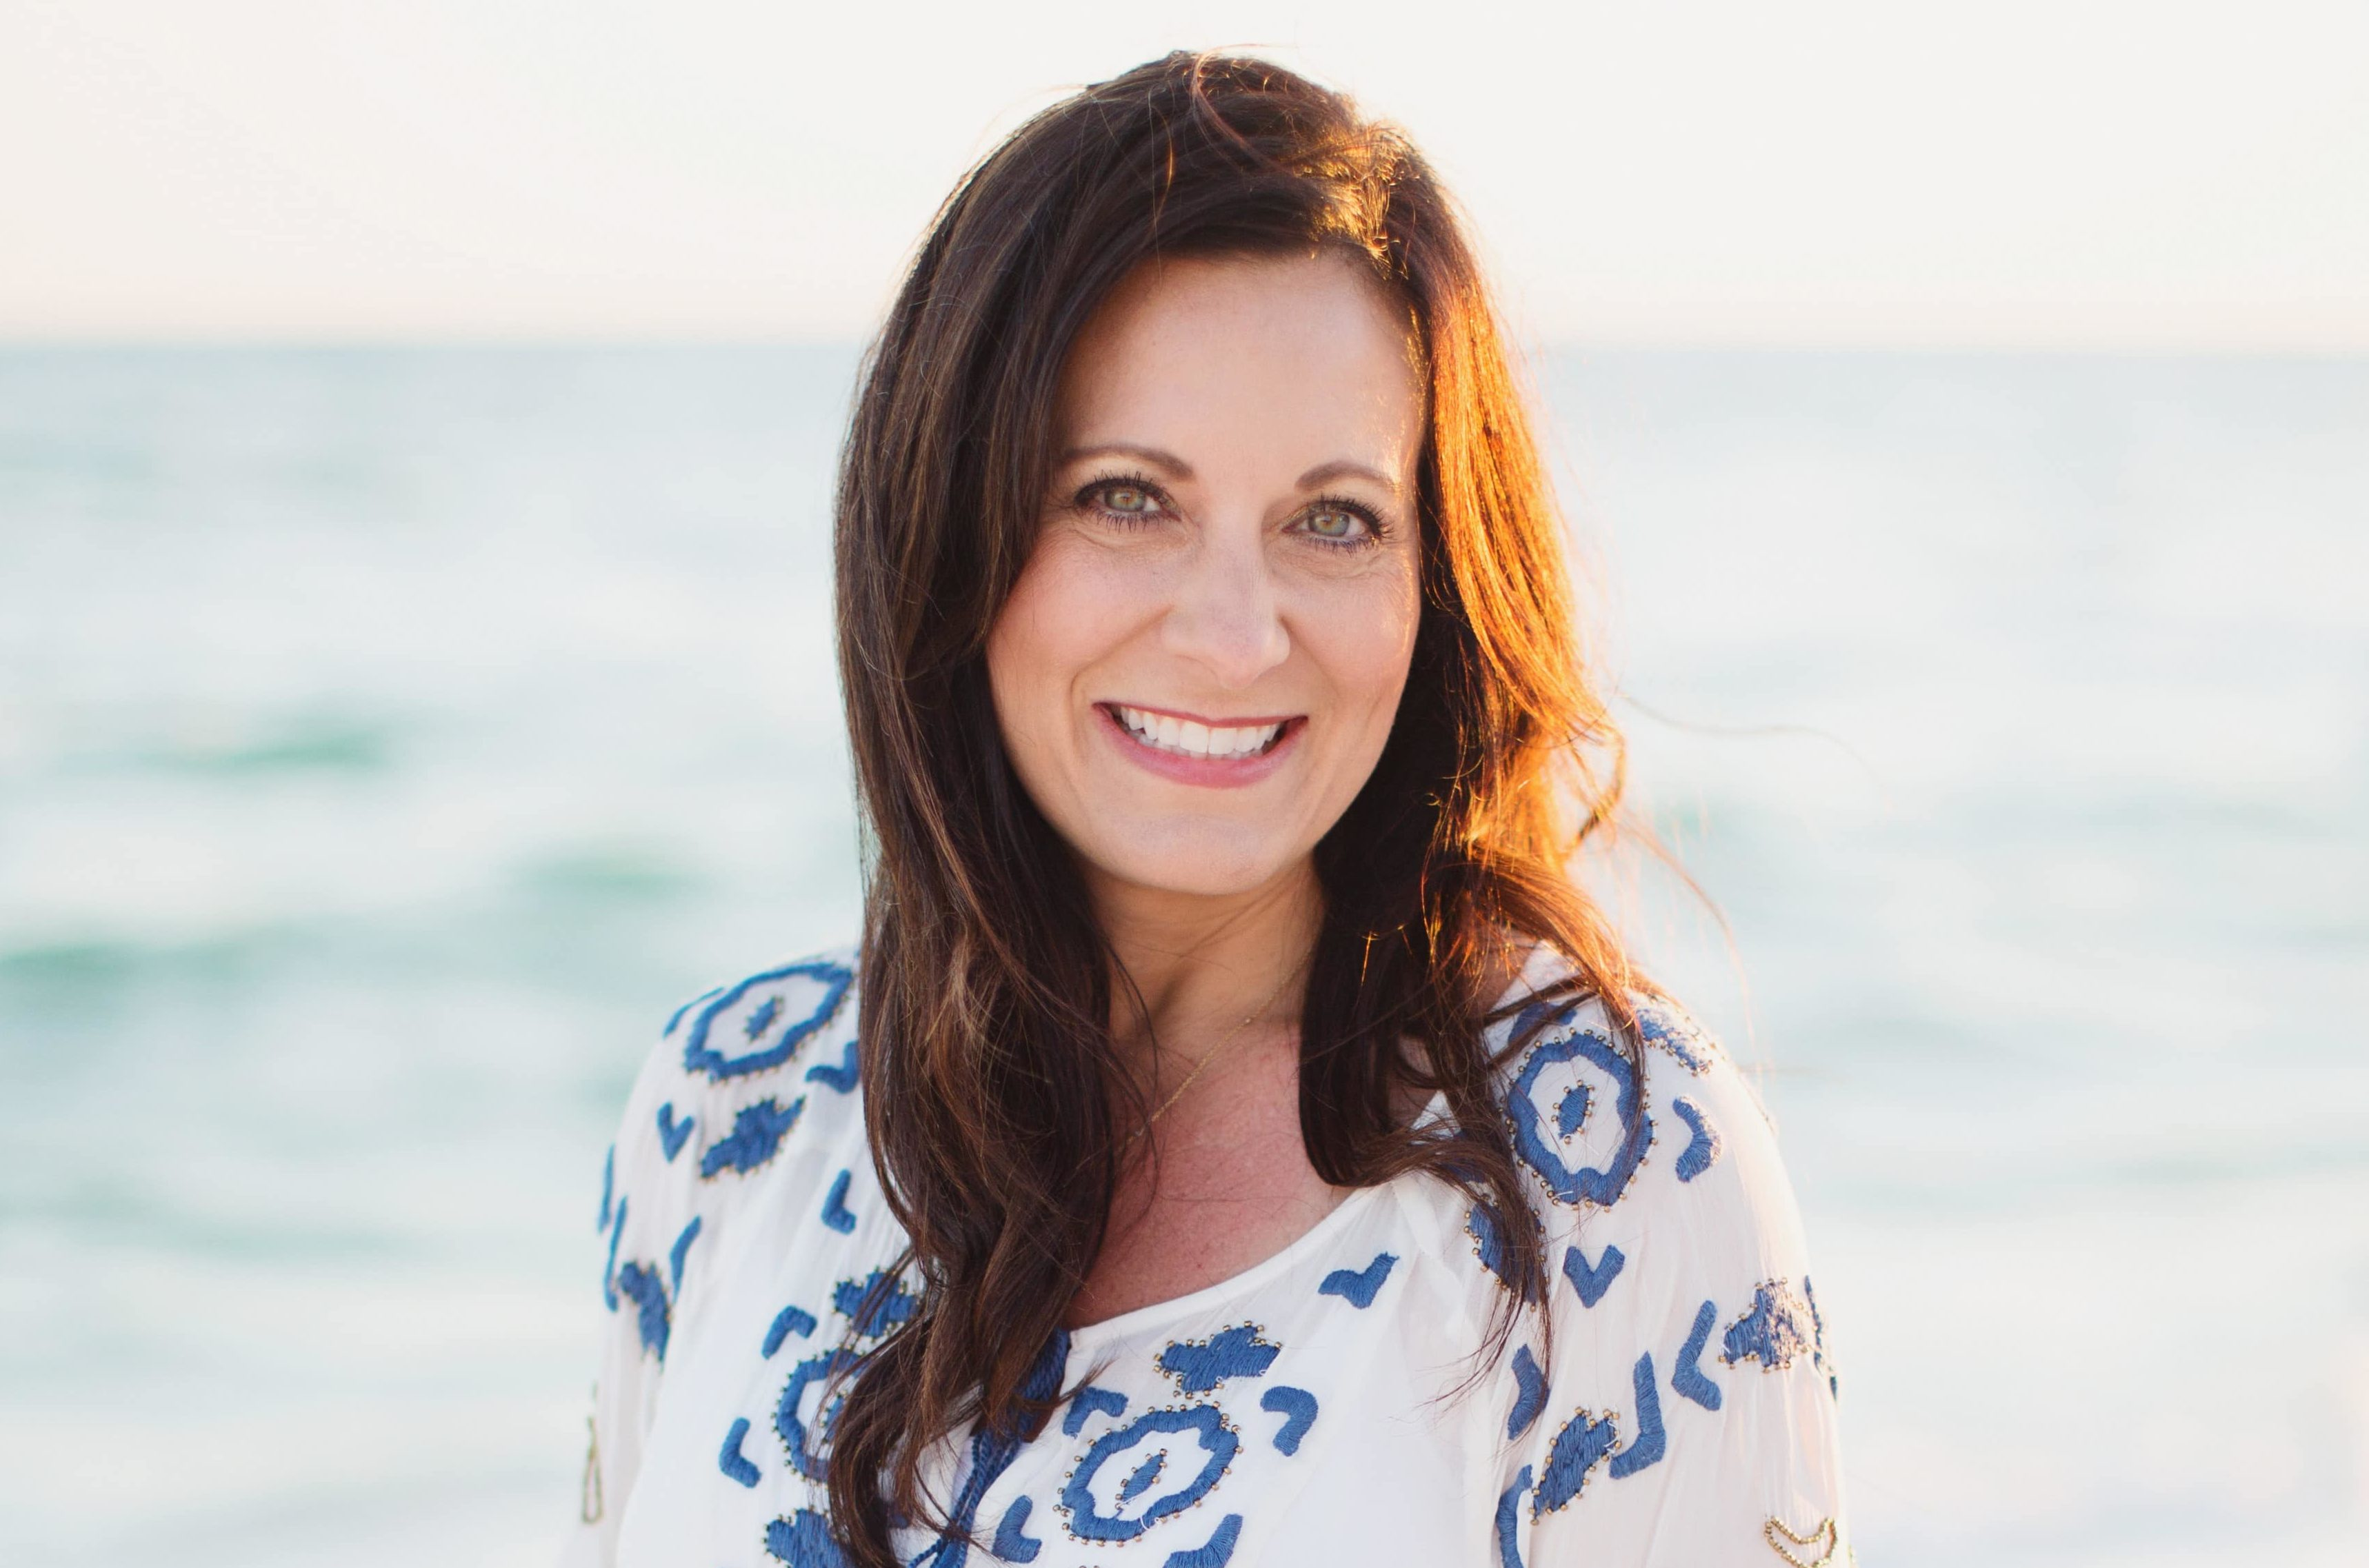 CNLP 238: Lysa TerKeurst on Living and Leading Through Personal Crisis, Disappointment, and Navigating What Part of Your Life Should Be Personal, Private or Secret